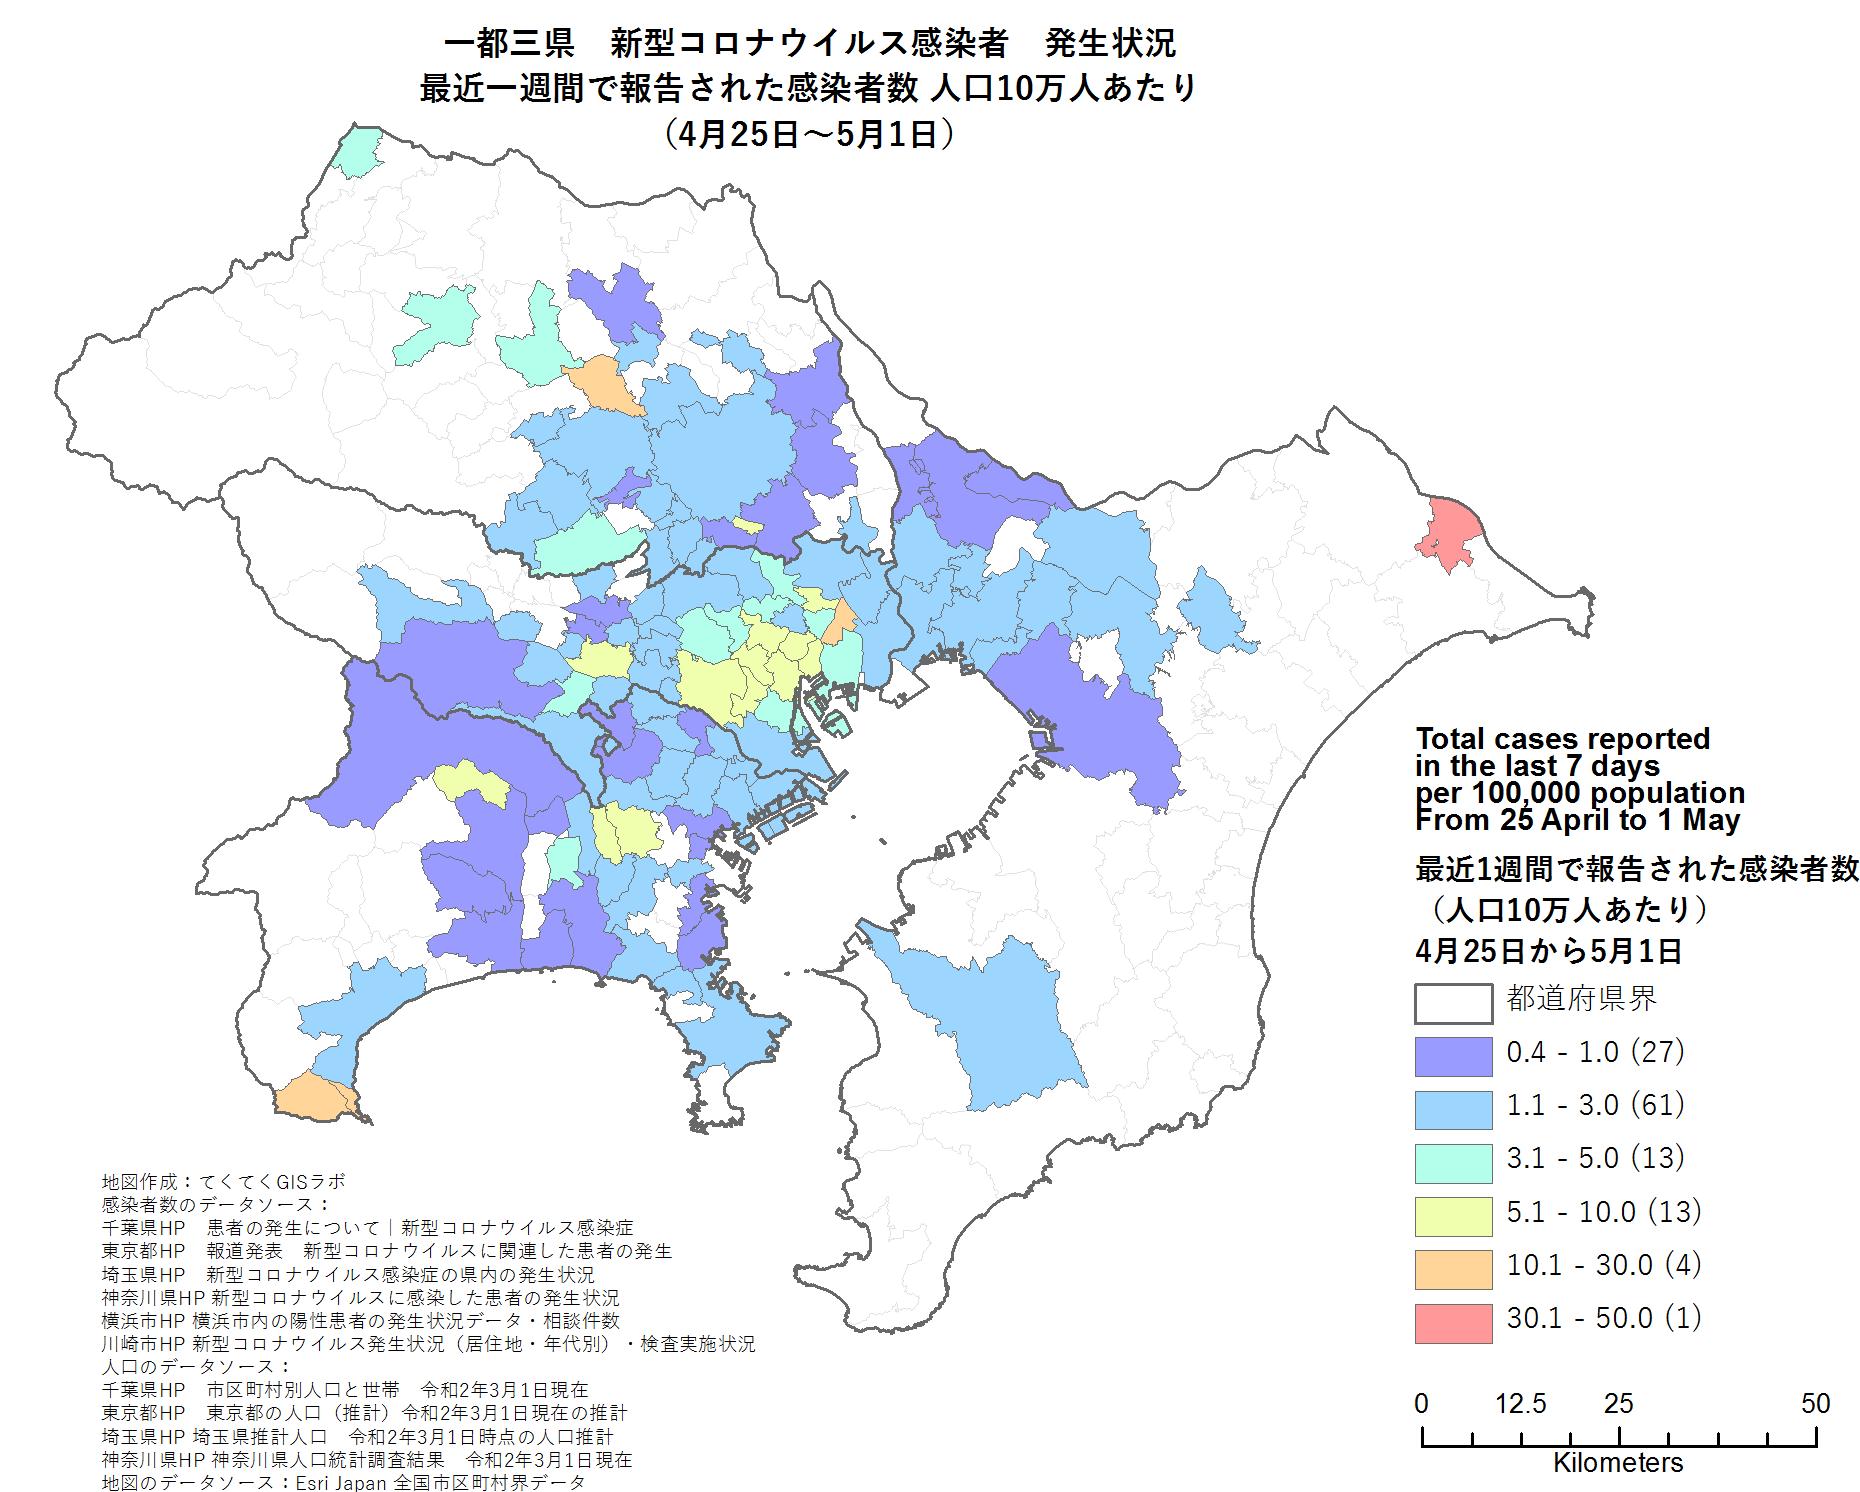 Number of cases per 100,000 population around Tokyo from 24 Apr. to 1 May